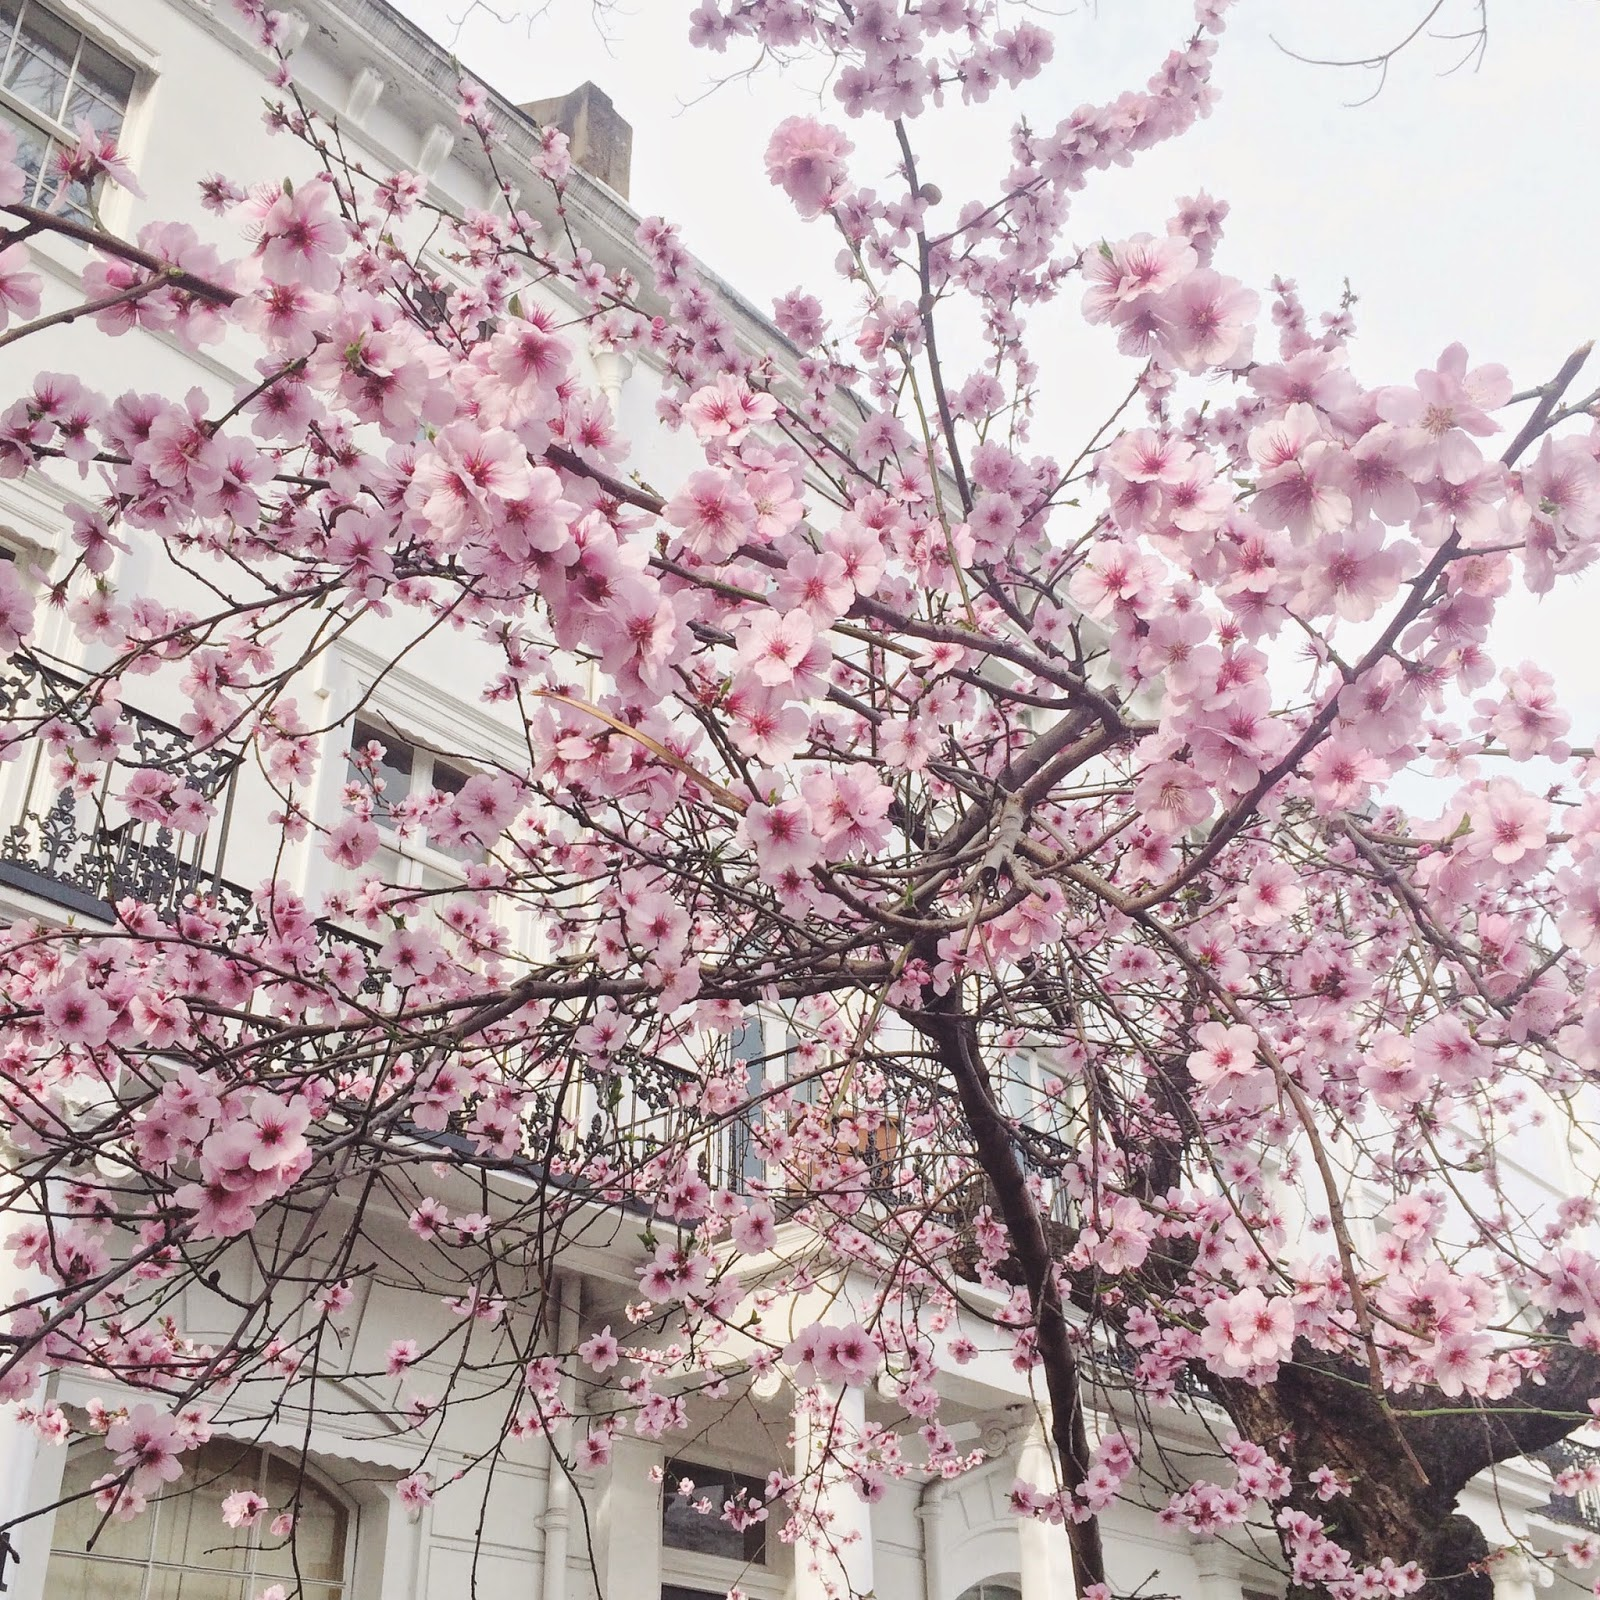 cherrytree, cherryblossom, spring, london, pink cherry tree